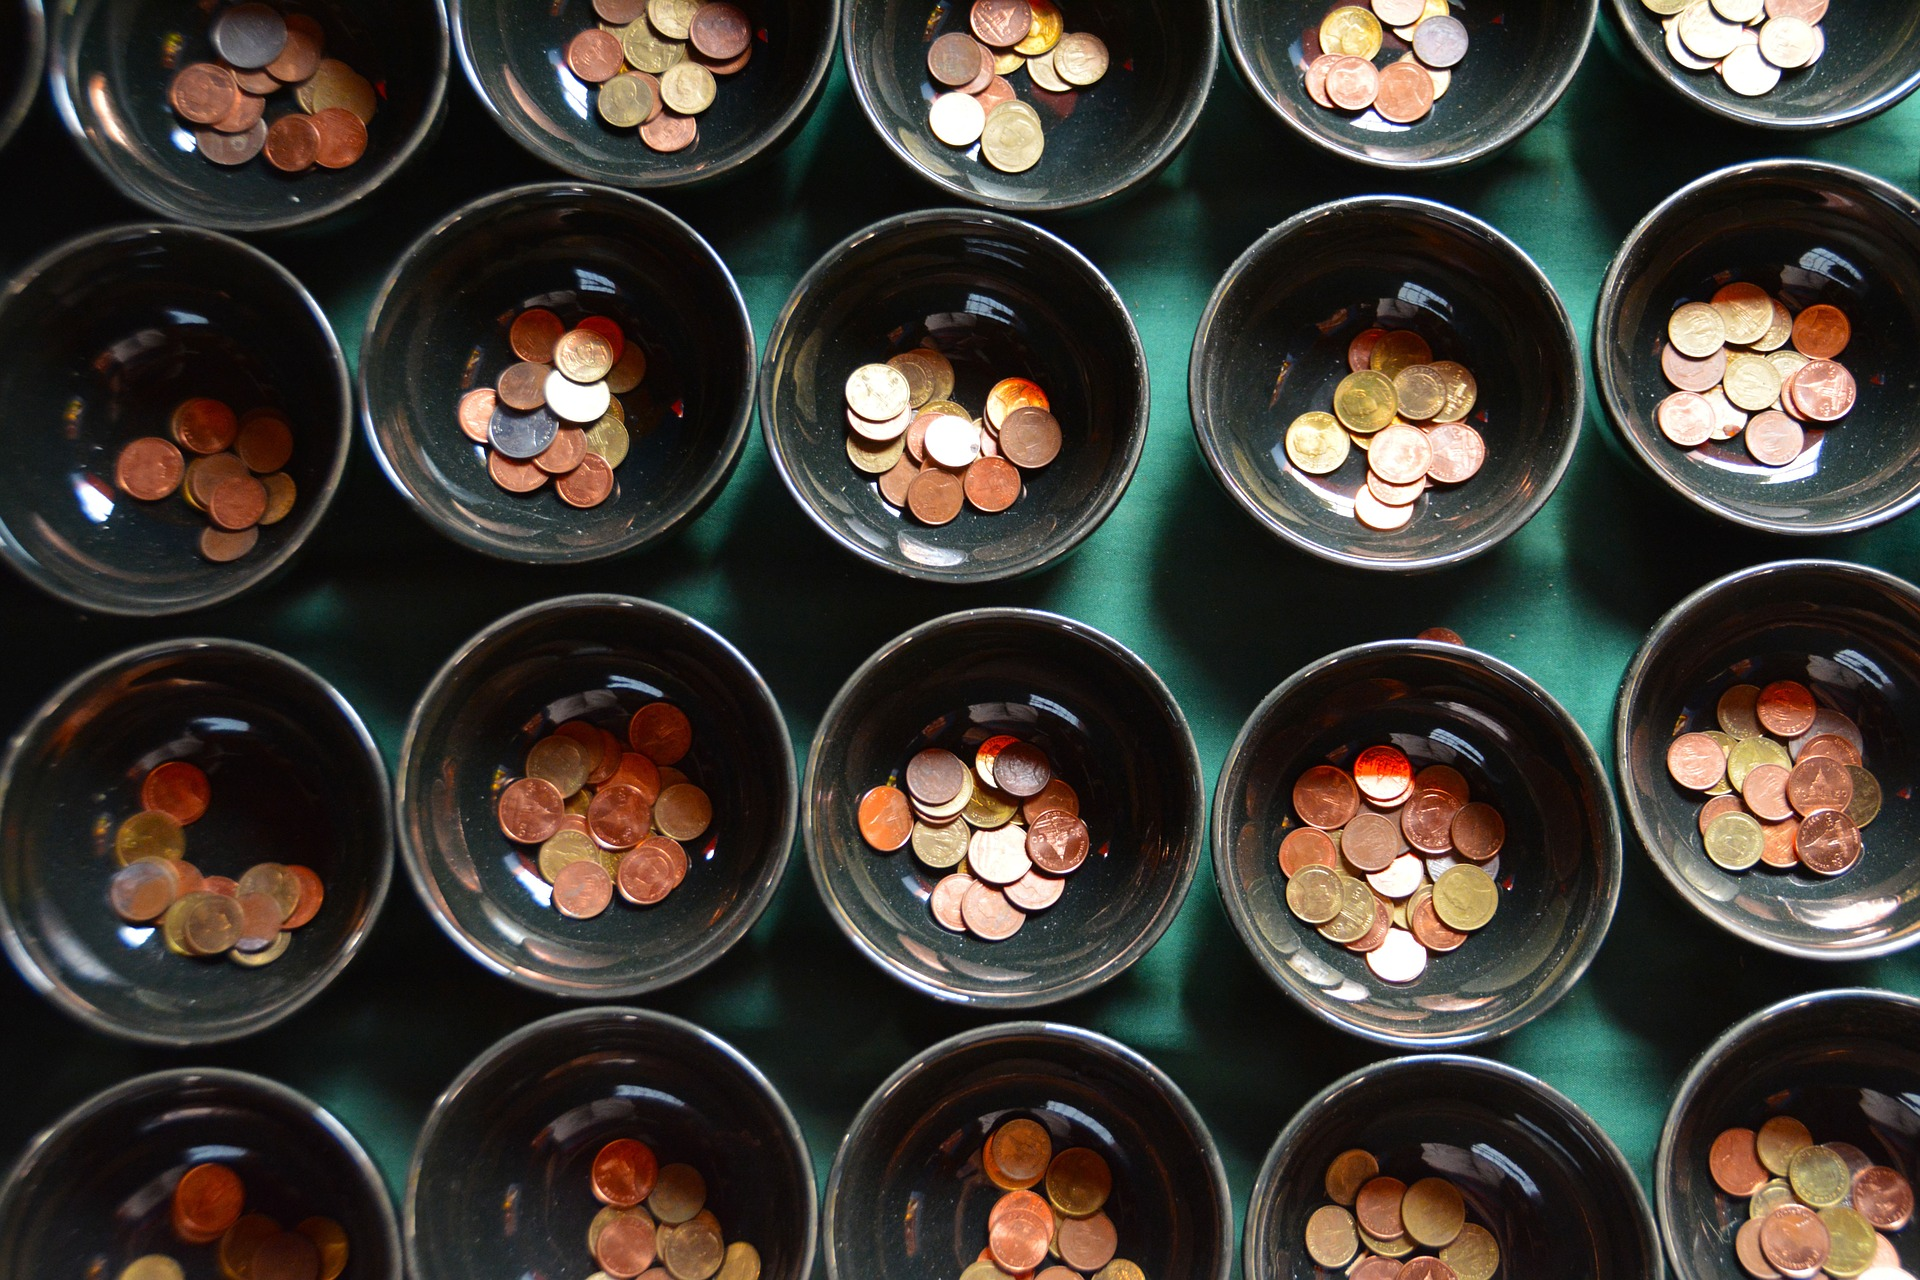 pennies in bowl